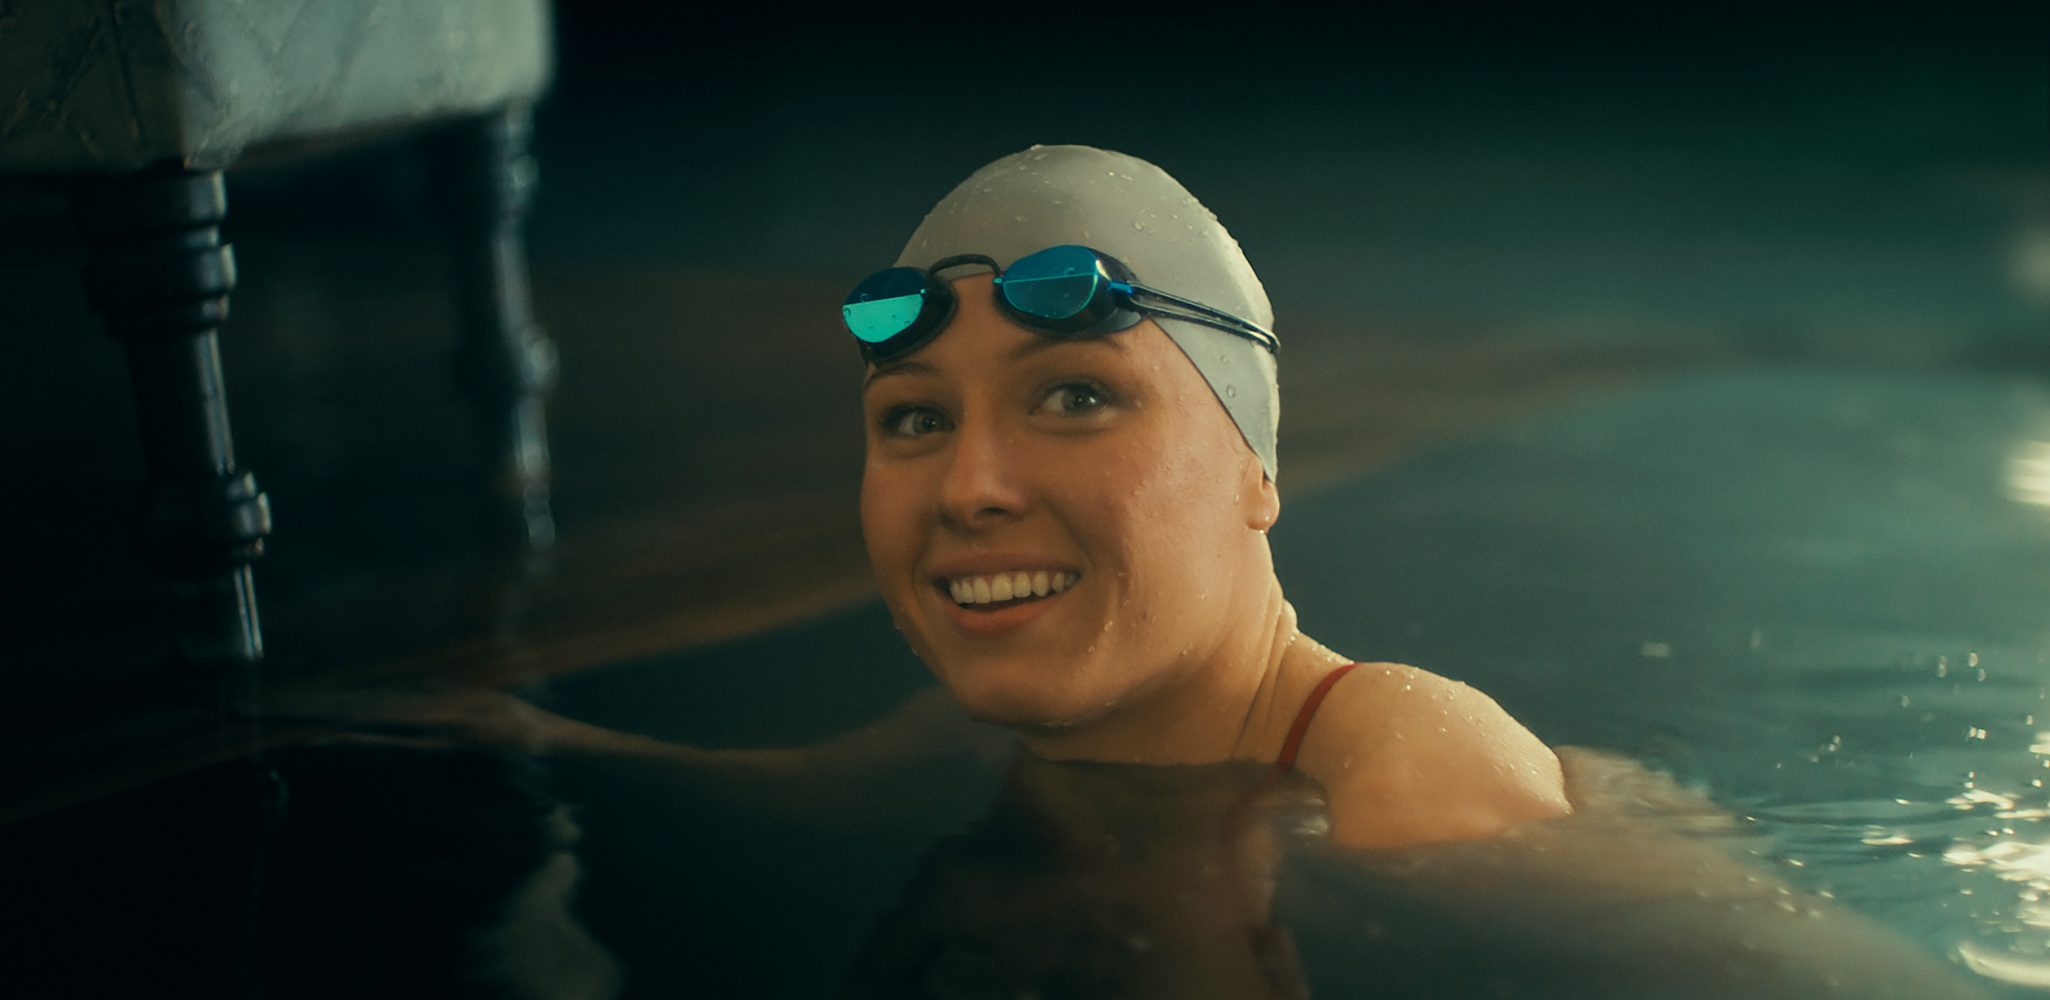 Swimming 'Upstream' With U.S. Paralympian Jessica Long